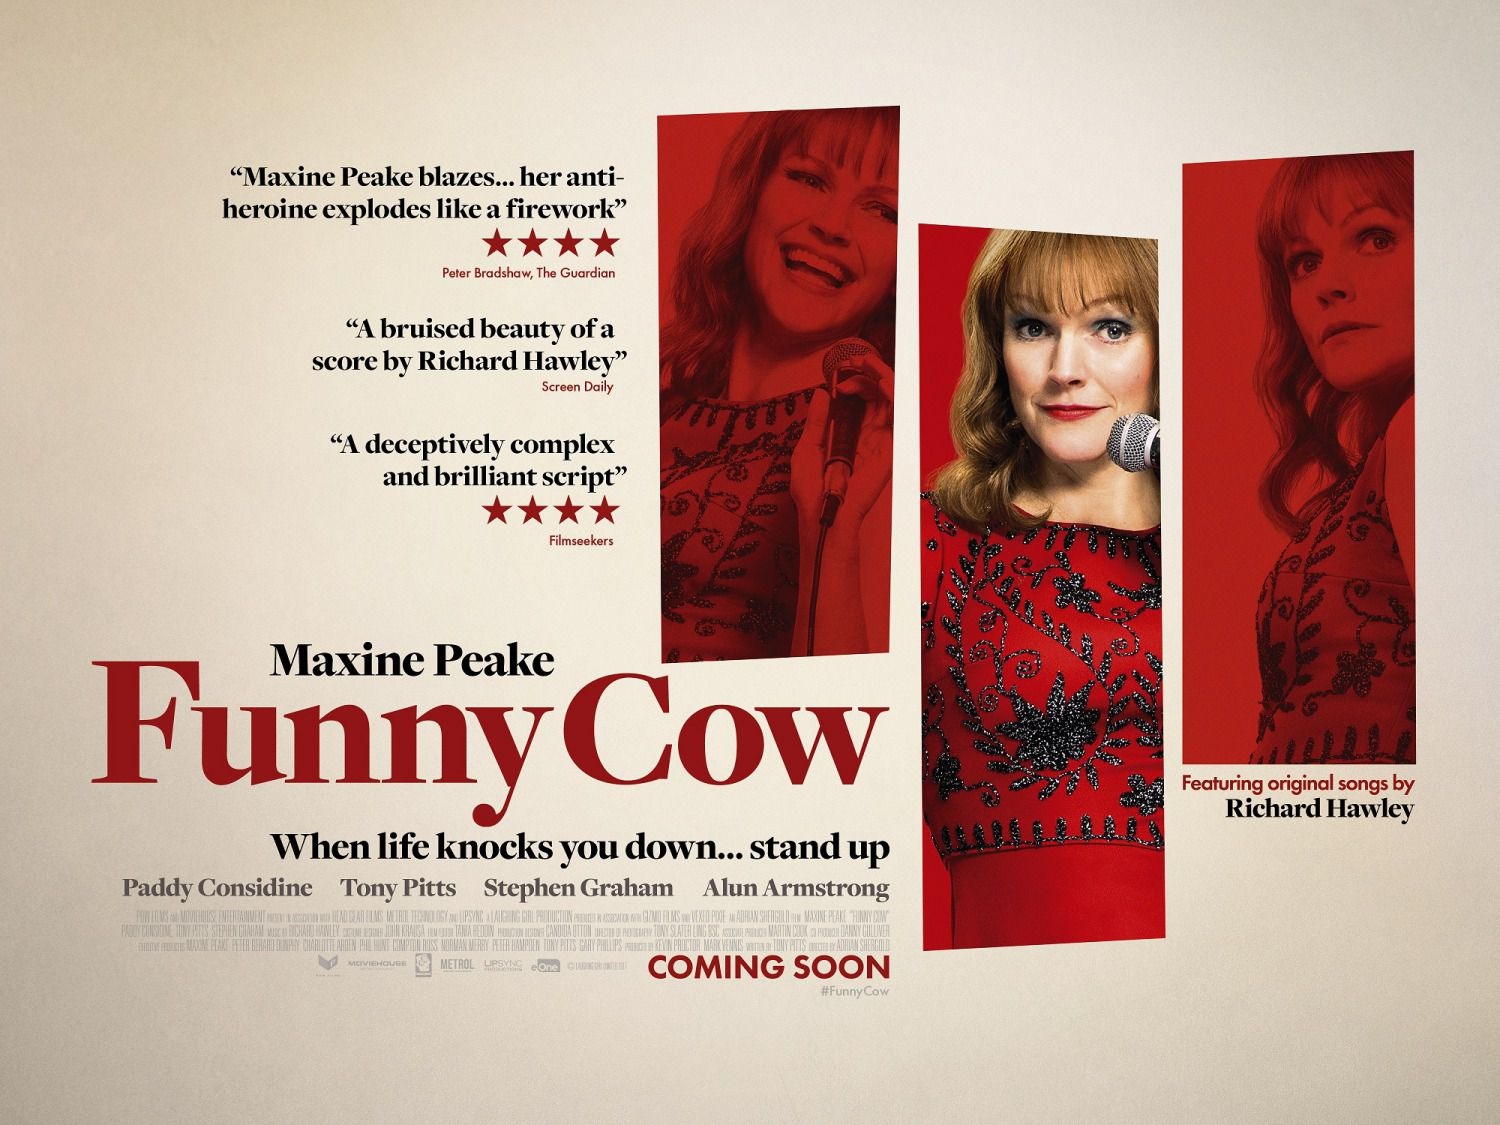 Funny Cow - When Life Knocks you down, stand up by Maxine Peake - Cast: Paddy Considine, Tony Pitts, Stephen Graham, Alun Armstrong - film poster